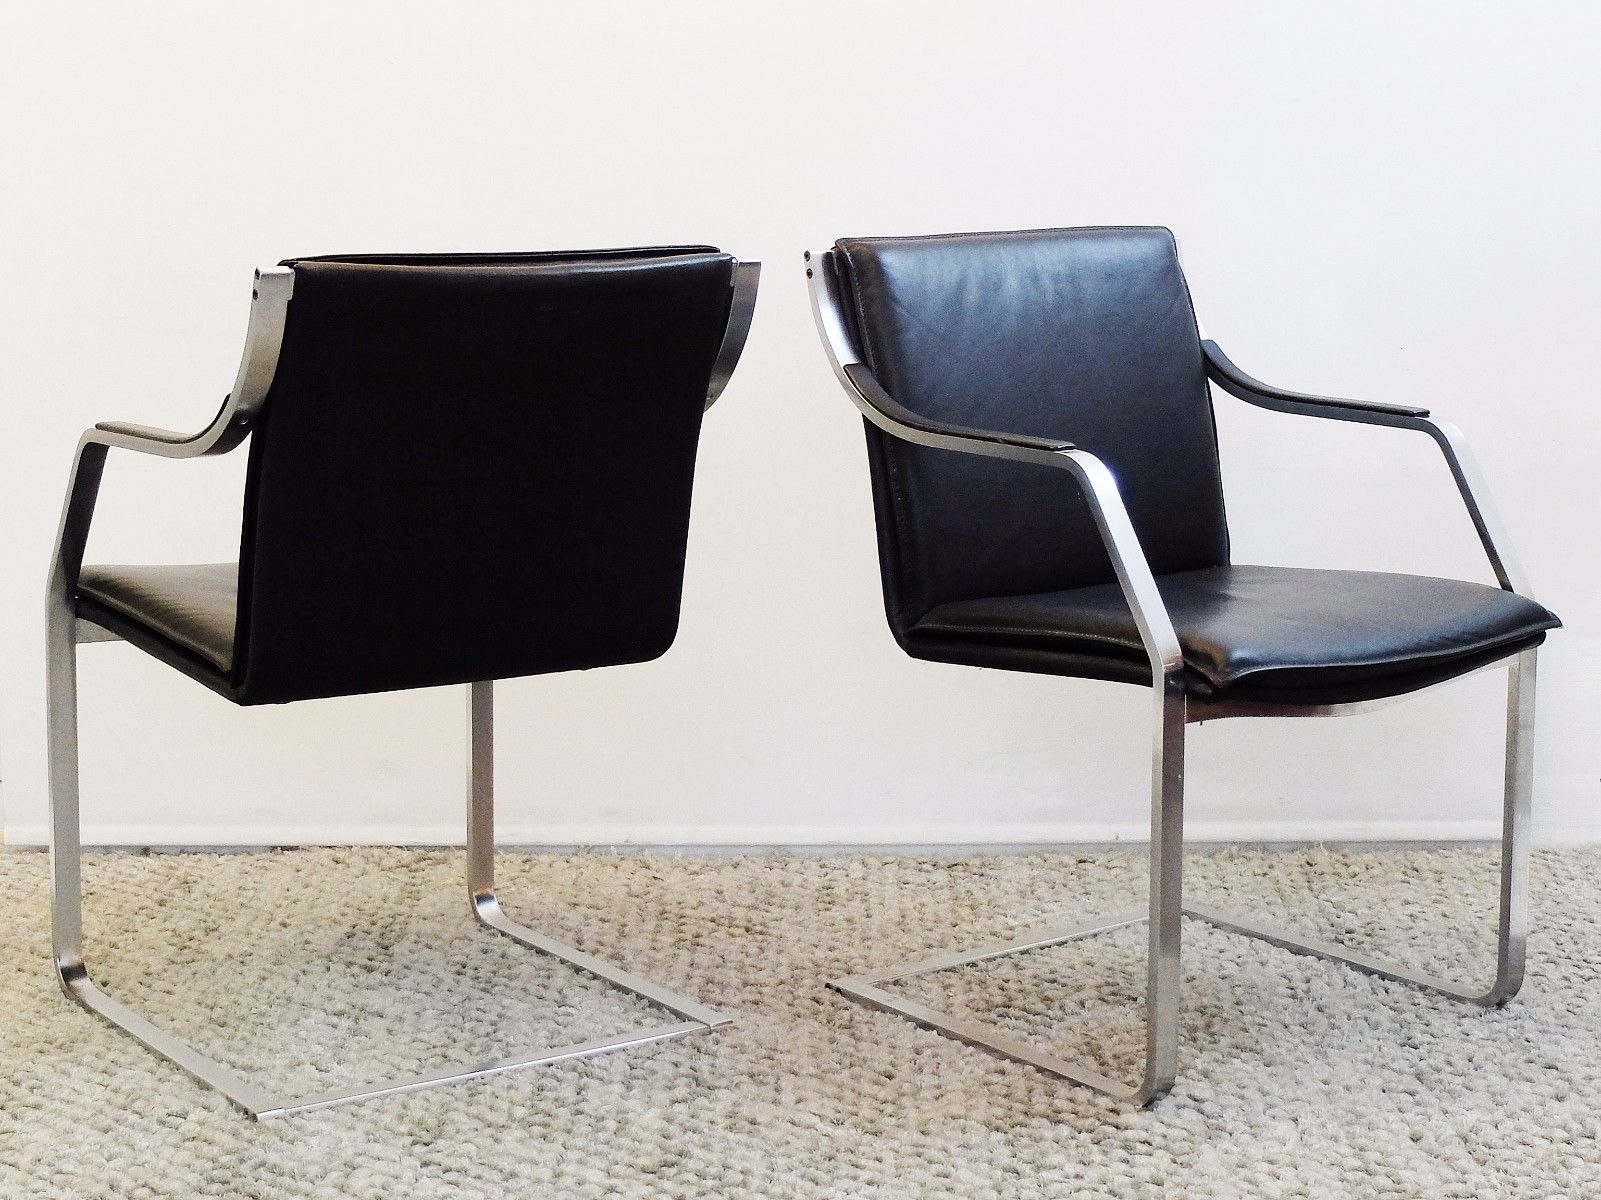 Cantilever chair by rudolf b glatzel for knoll inc 1970s for sale at pamono - Knoll inc chairs ...